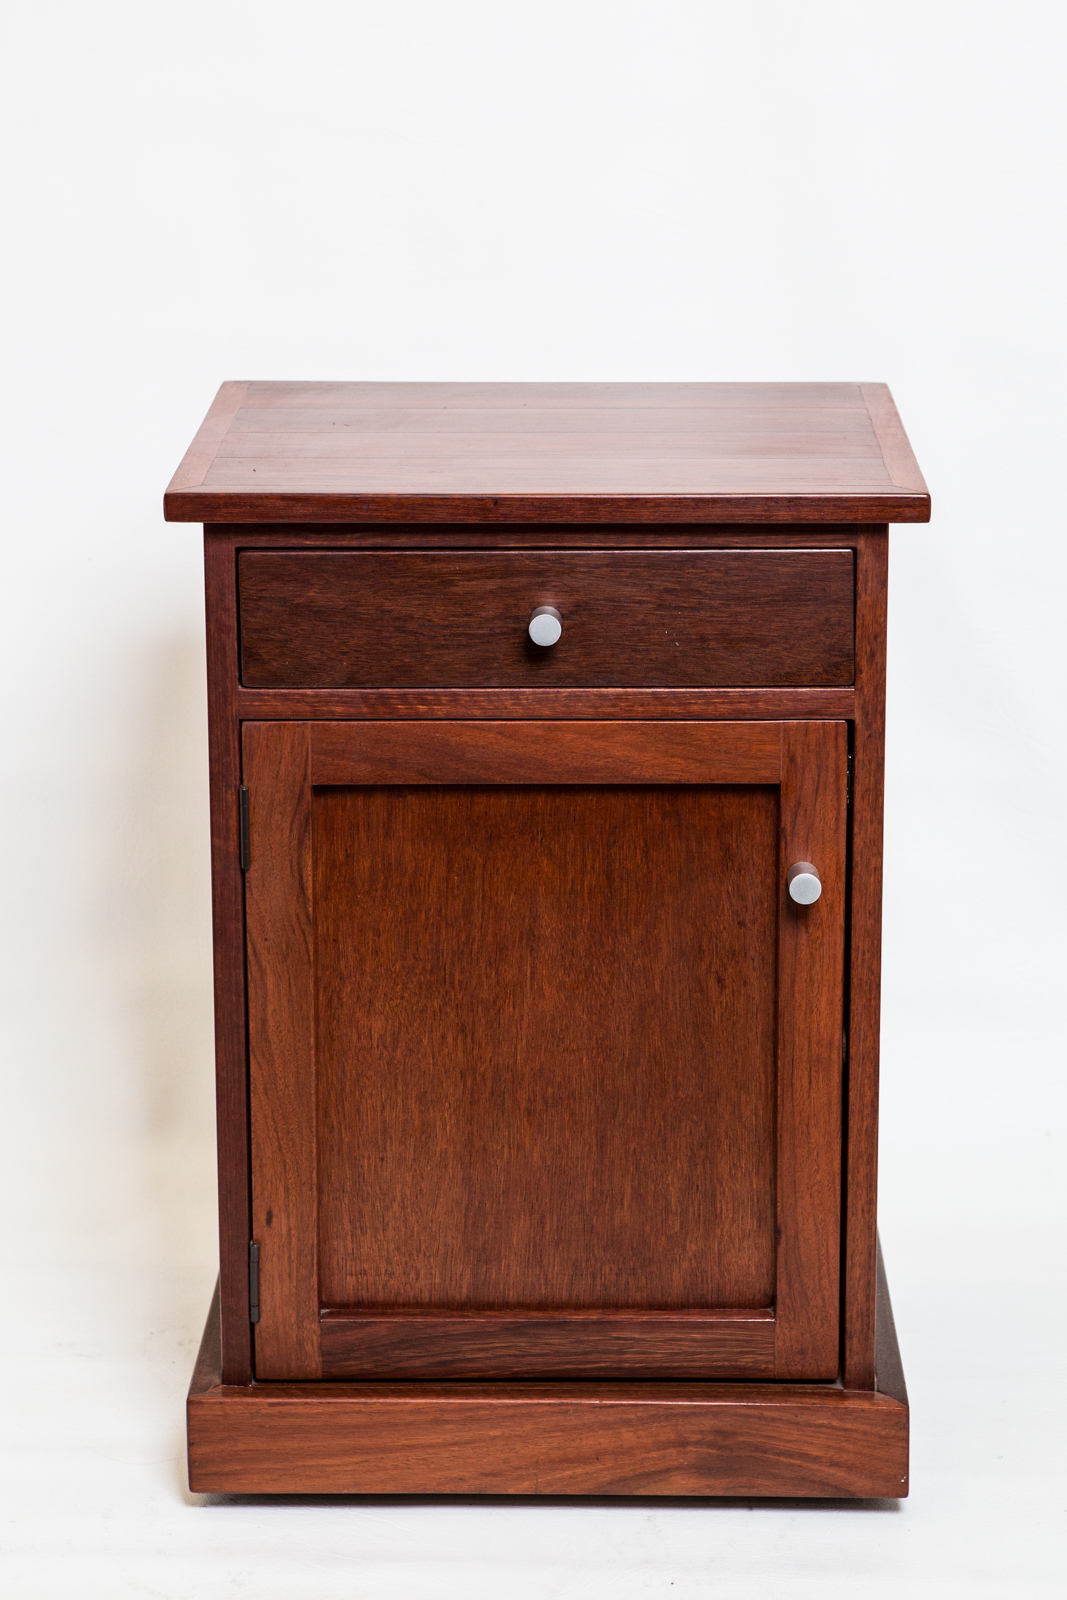 Bedside table with drawer and shelves